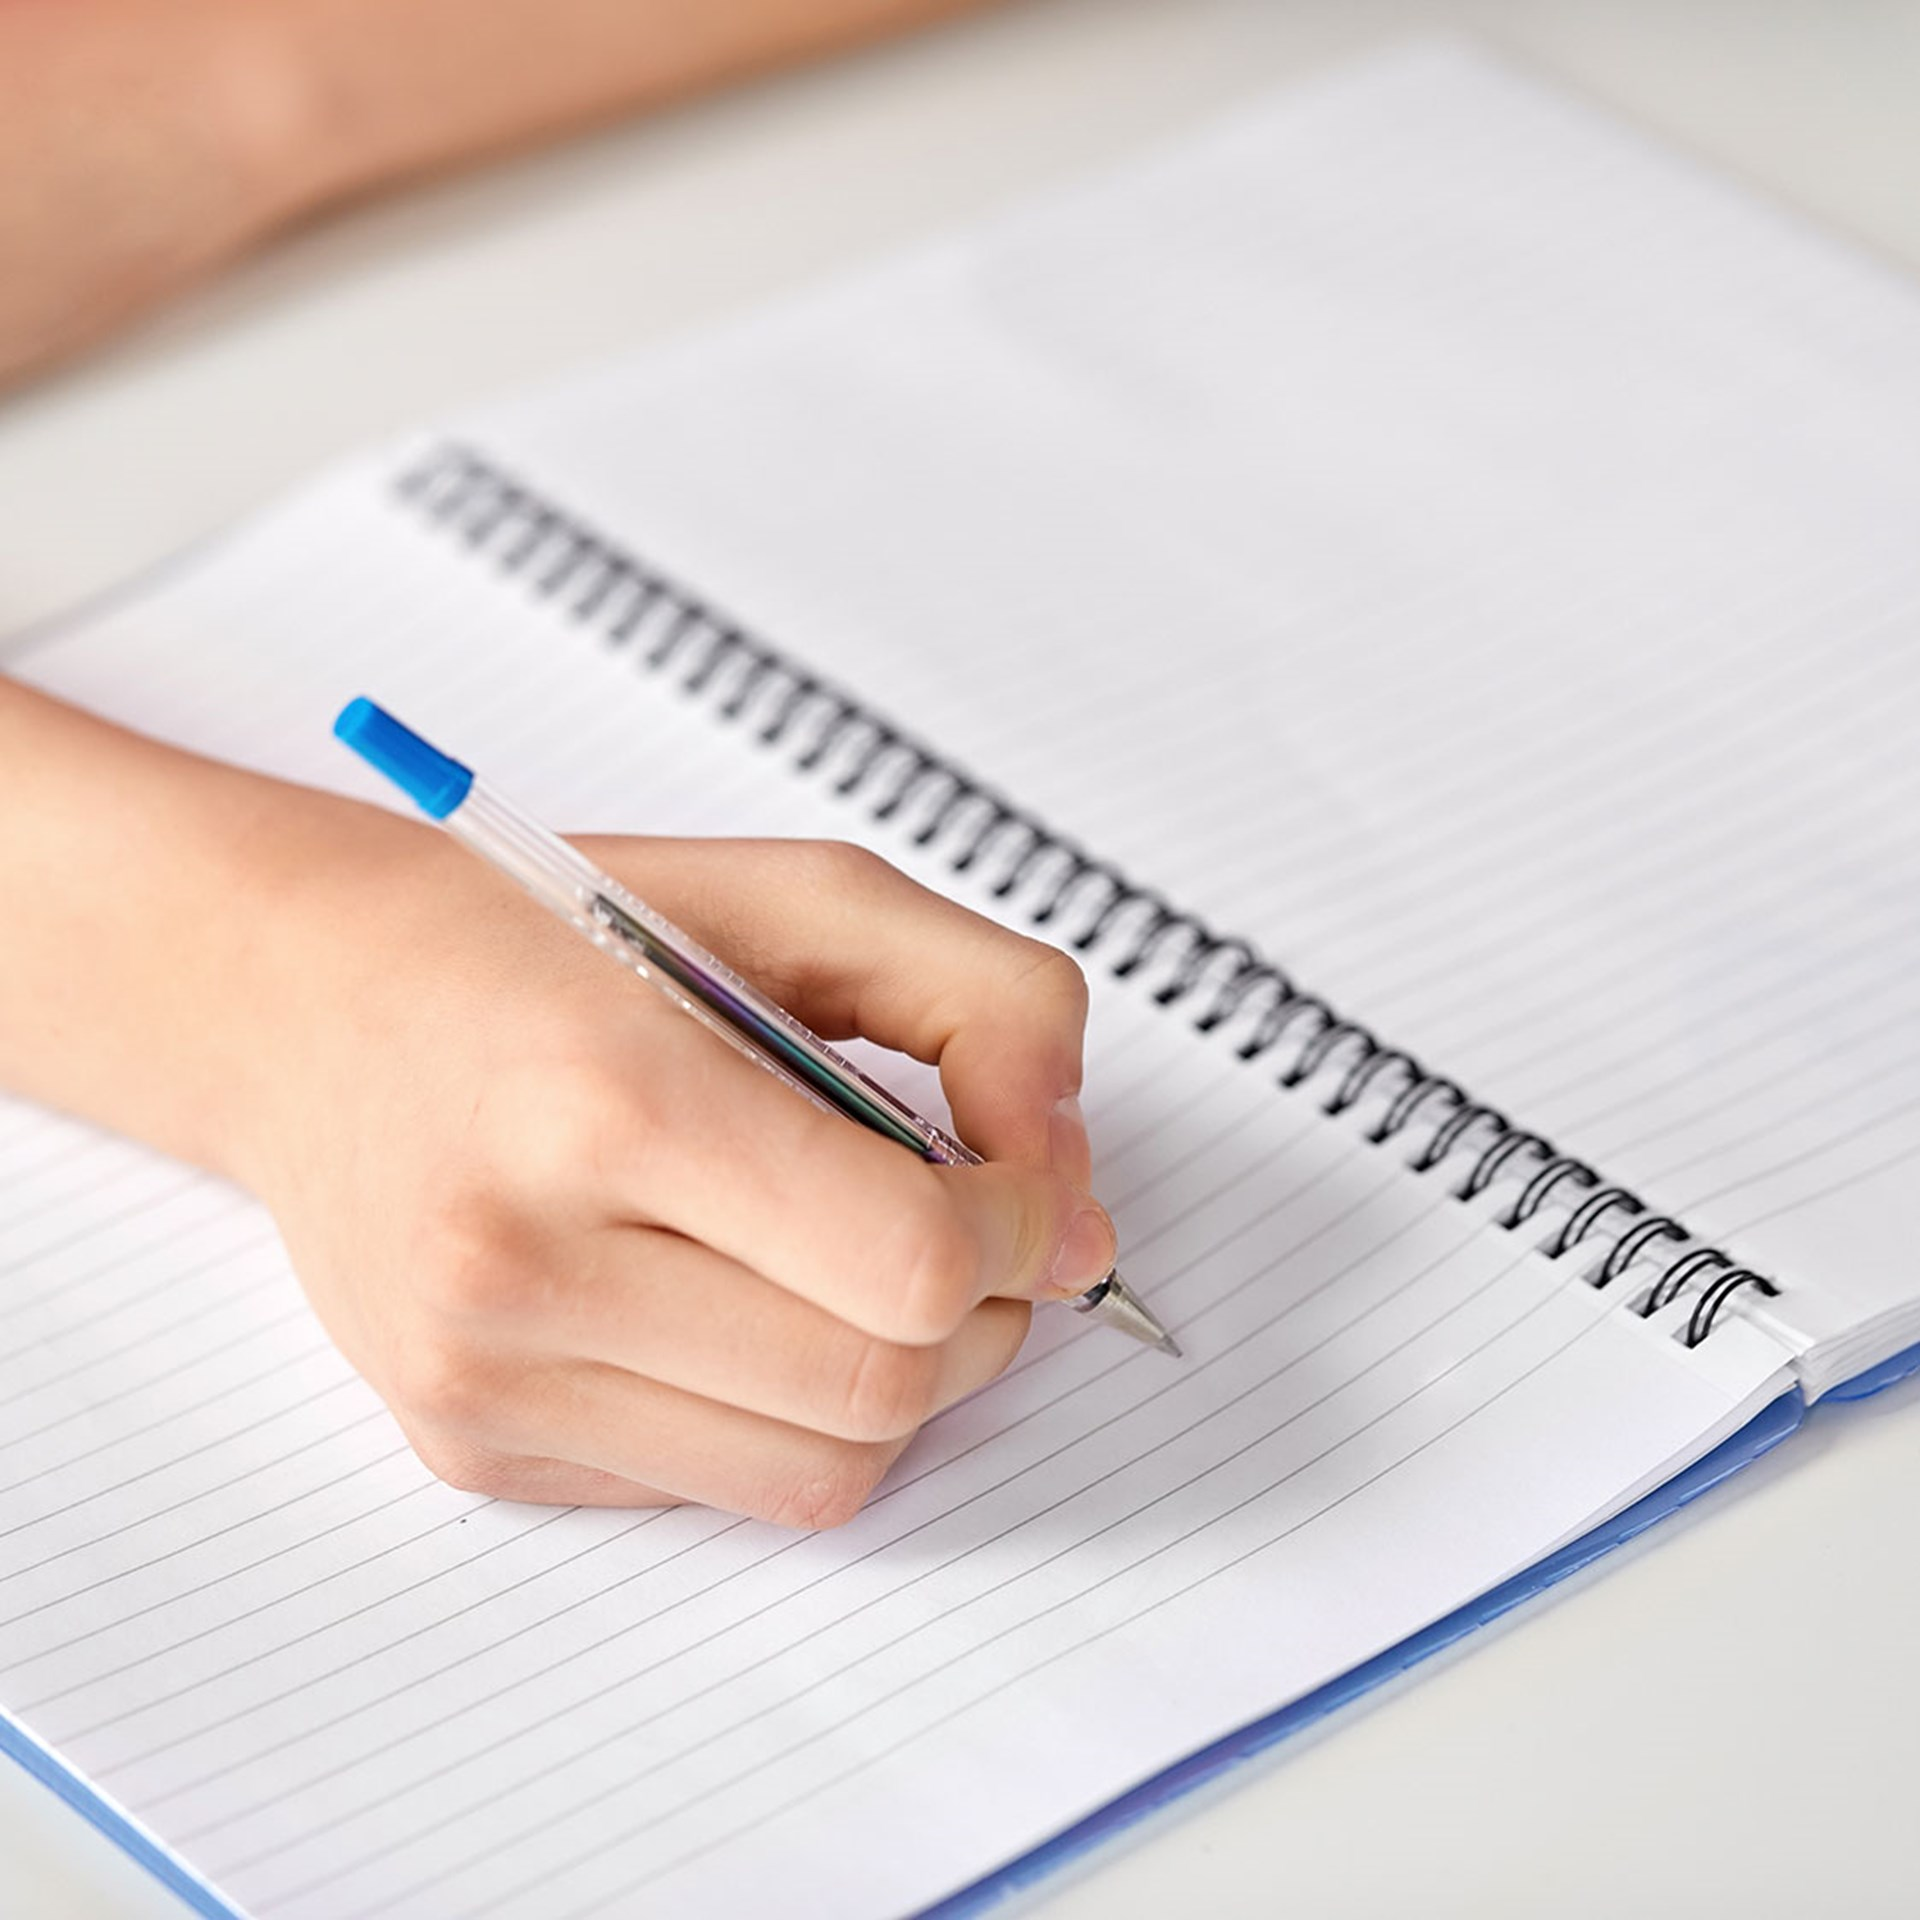 36468808 Hands Of Student Girl With Pen Writing To Notebook